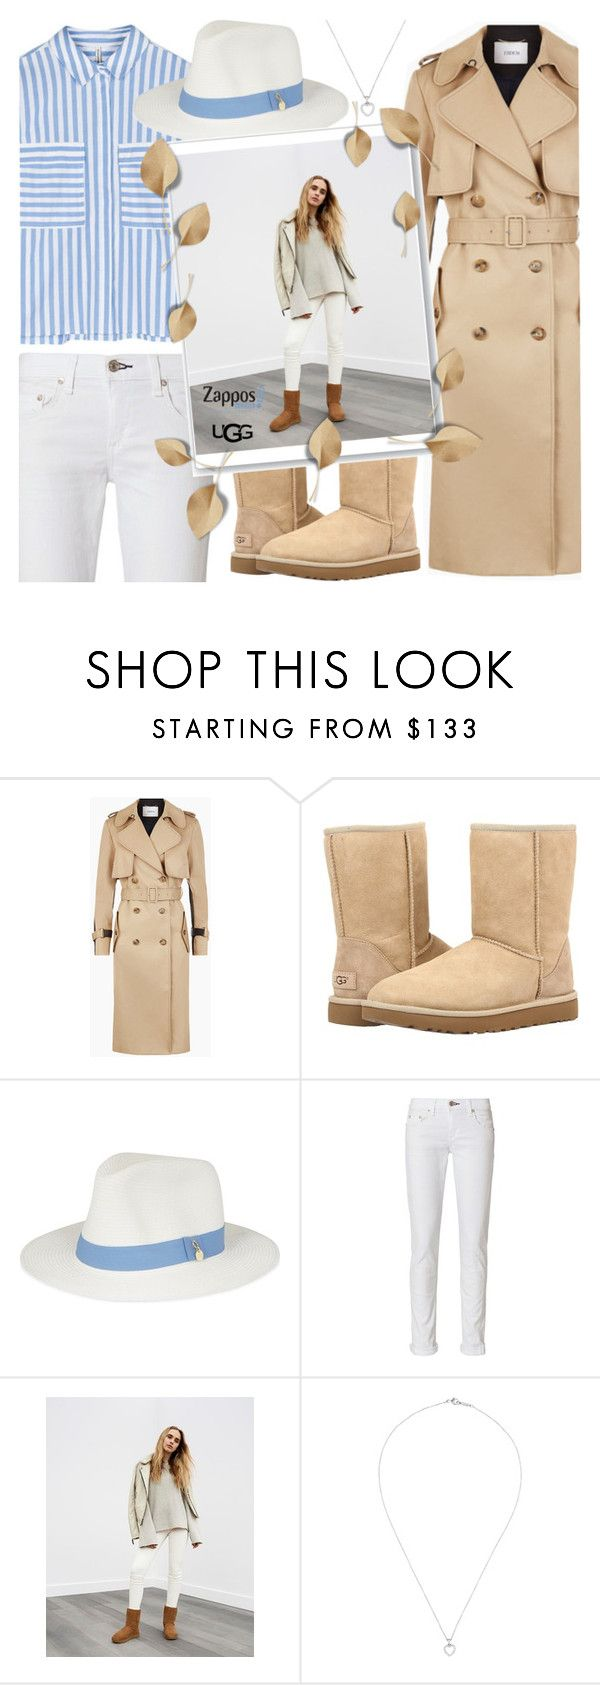 """""""The Icon Perfected: UGG Classic II Contest Entry"""" by anamarija00 ❤ liked on Polyvore featuring UGG, Melissa Odabash, rag & bone, Tiffany & Co., ugg and contestentry"""